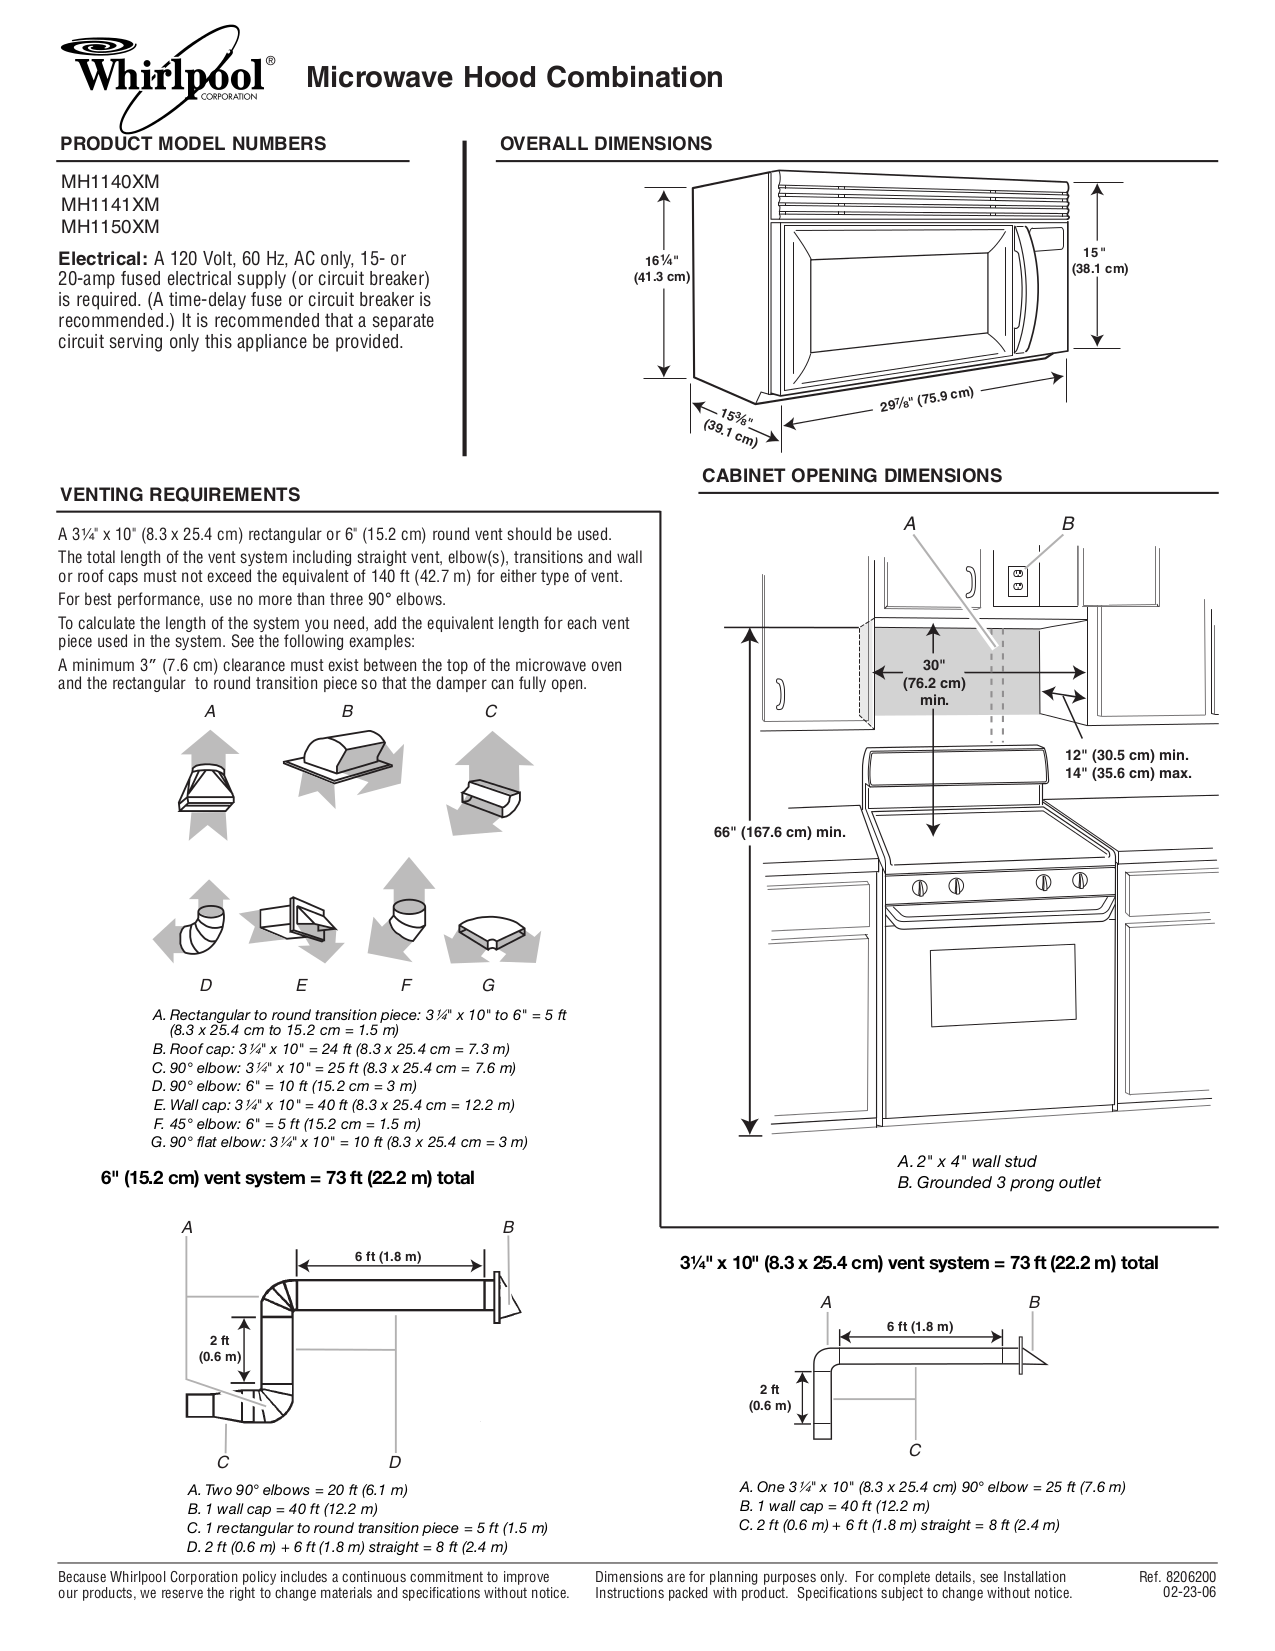 pdf for Whirlpool Microwave MH1141XM manual